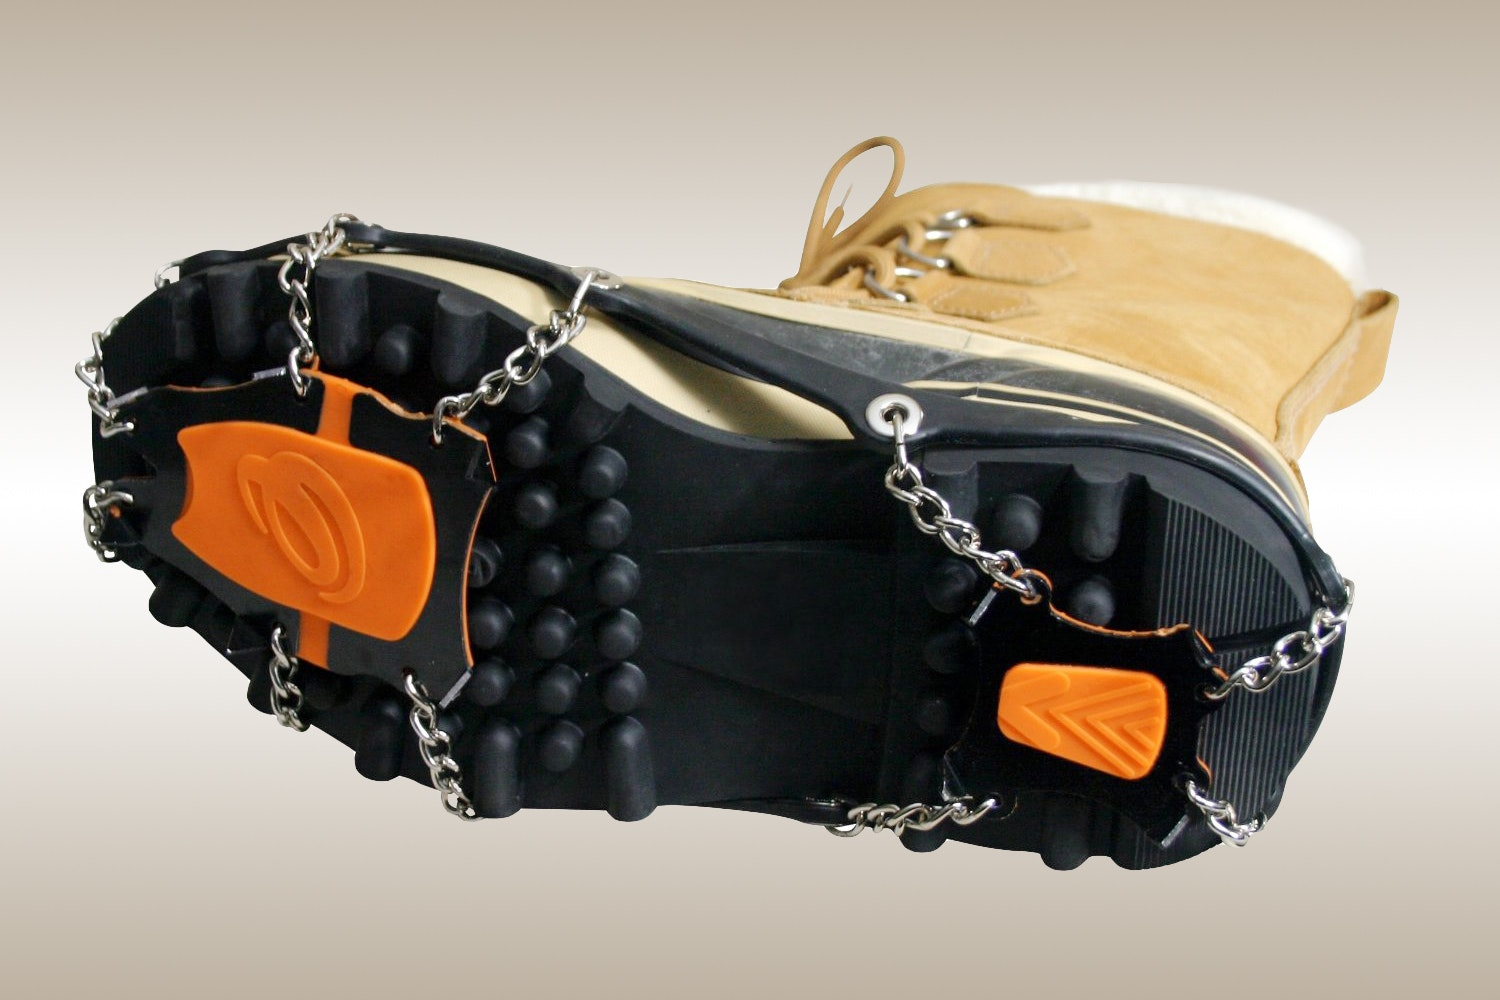 Yaktrax XTR Extreme Outdoor Traction Cleats